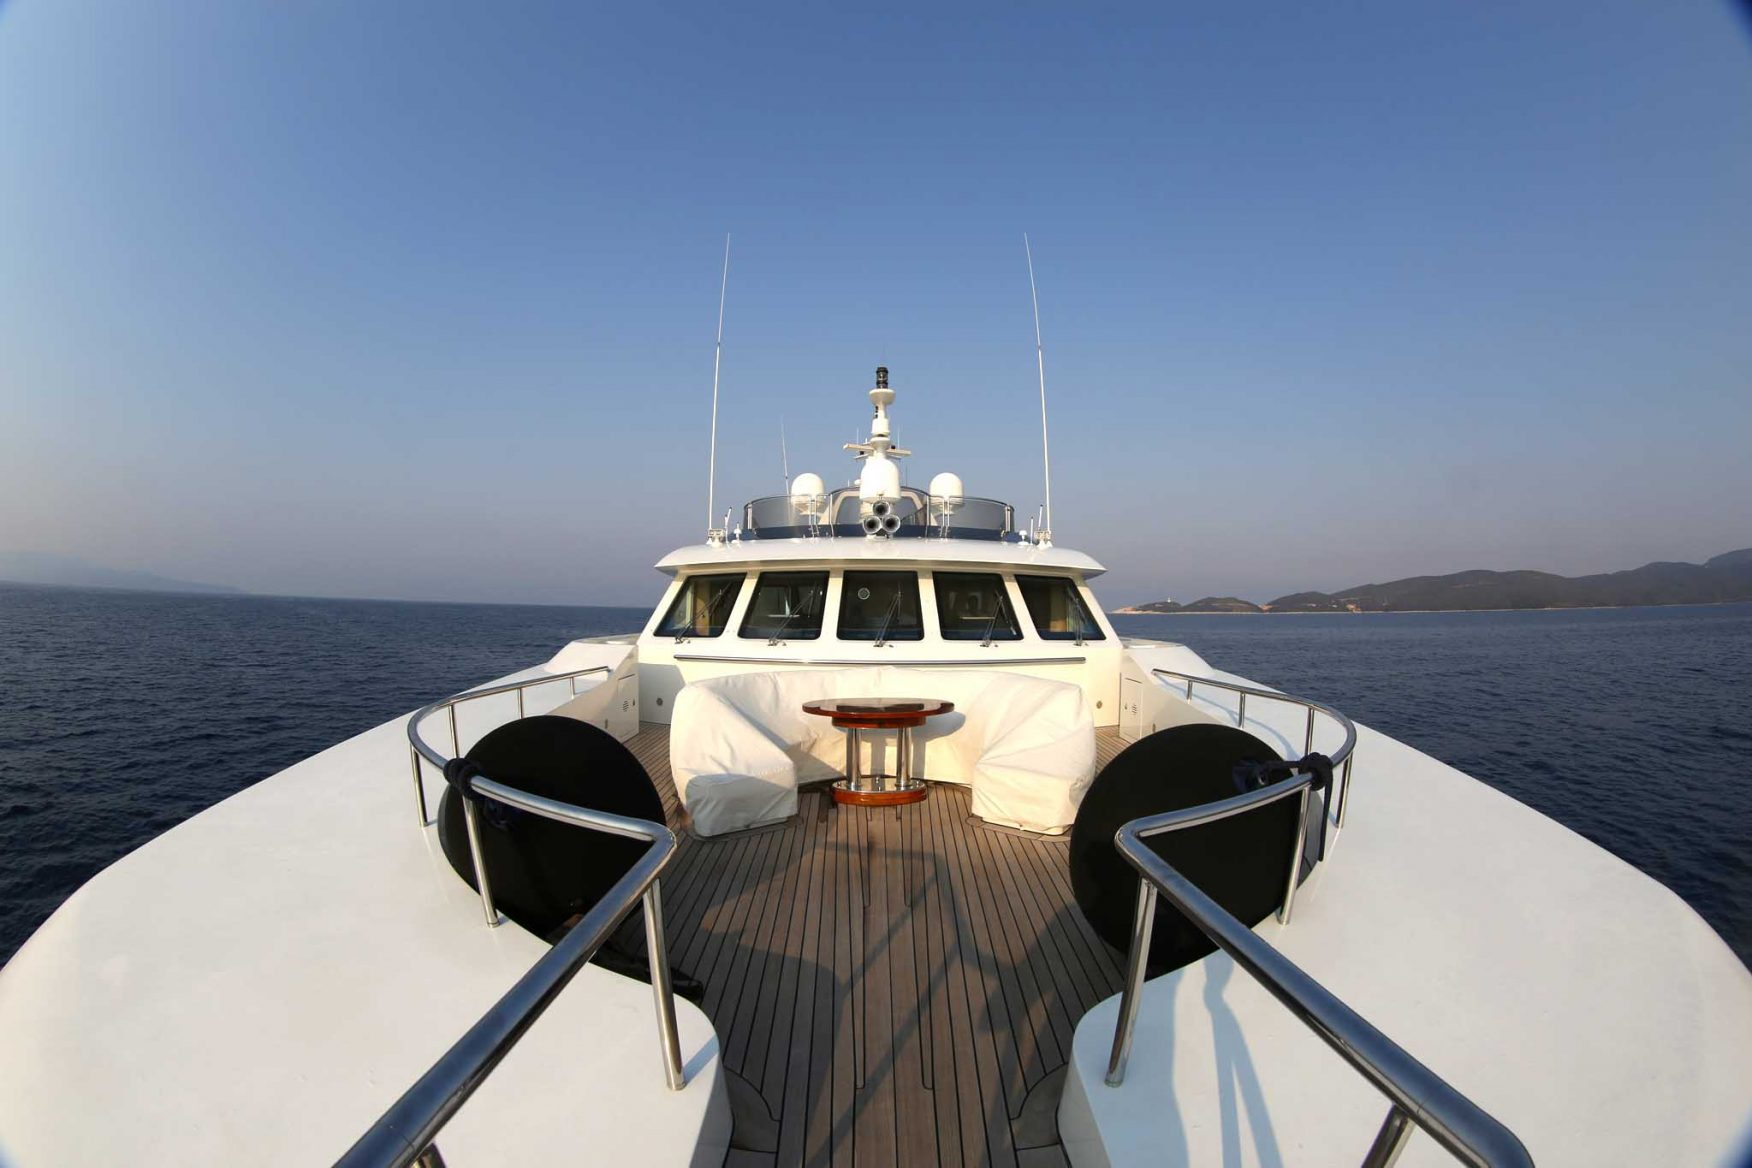 greek-mythological-cruising-yacht-front